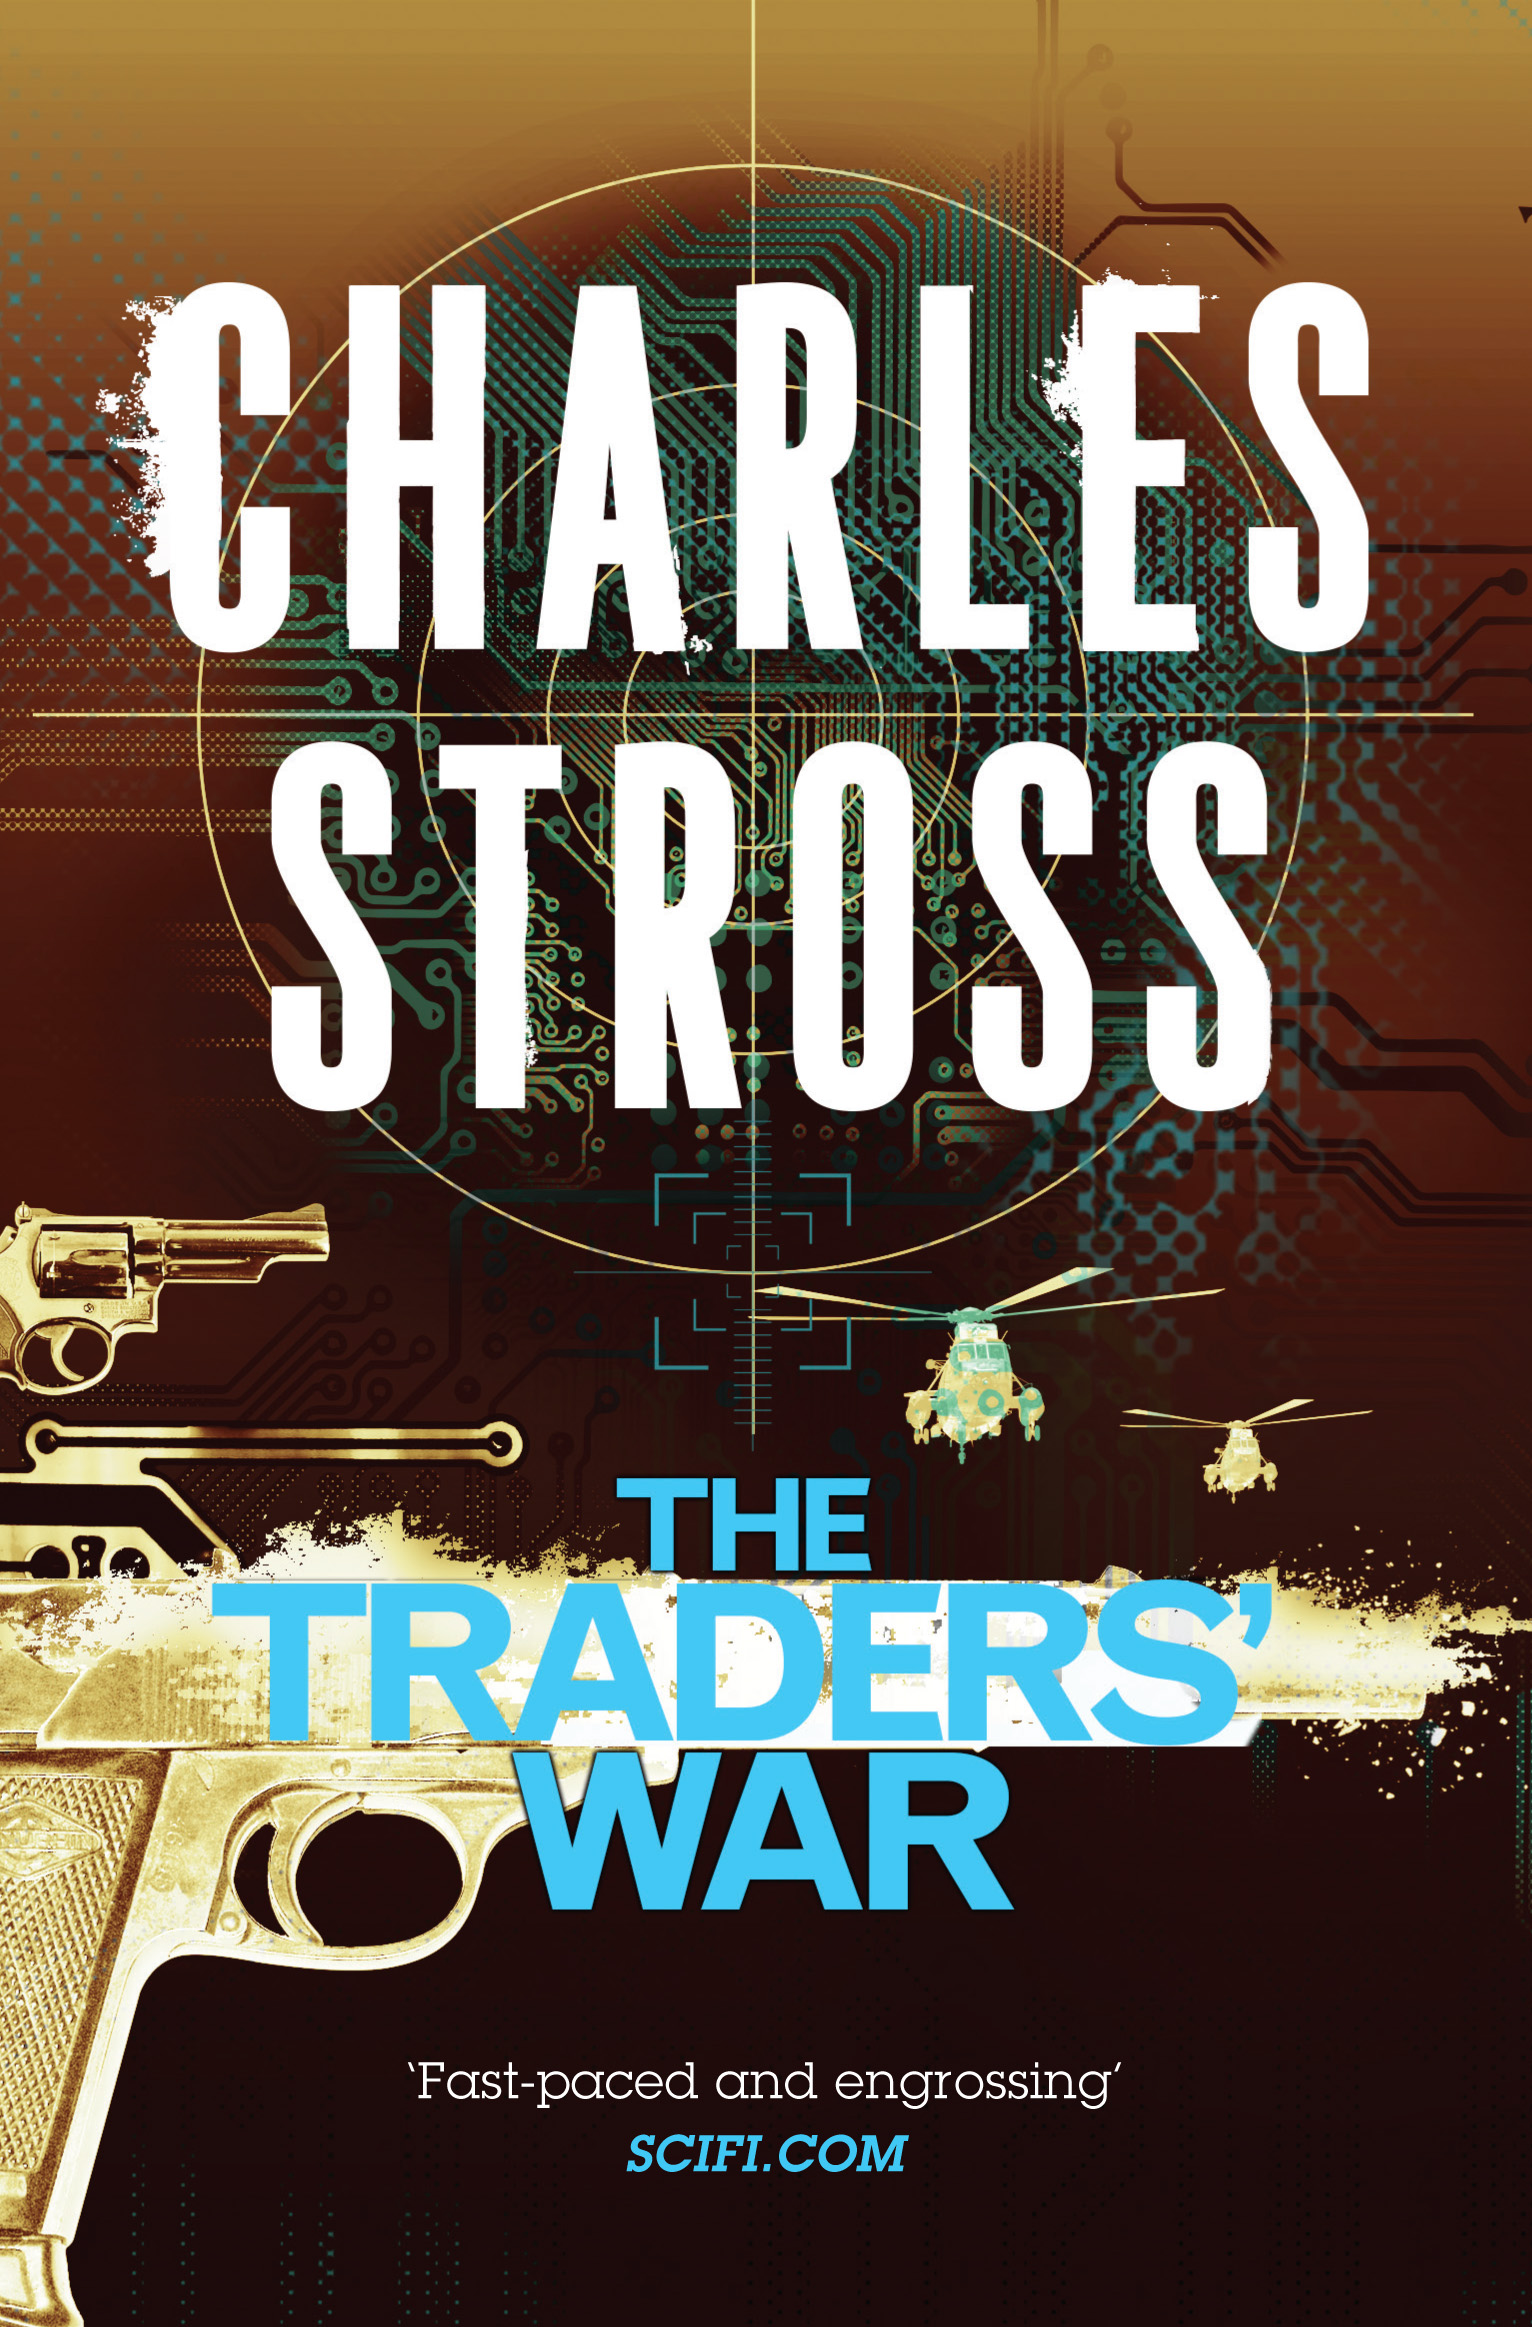 The Traders' War by Charles Stross